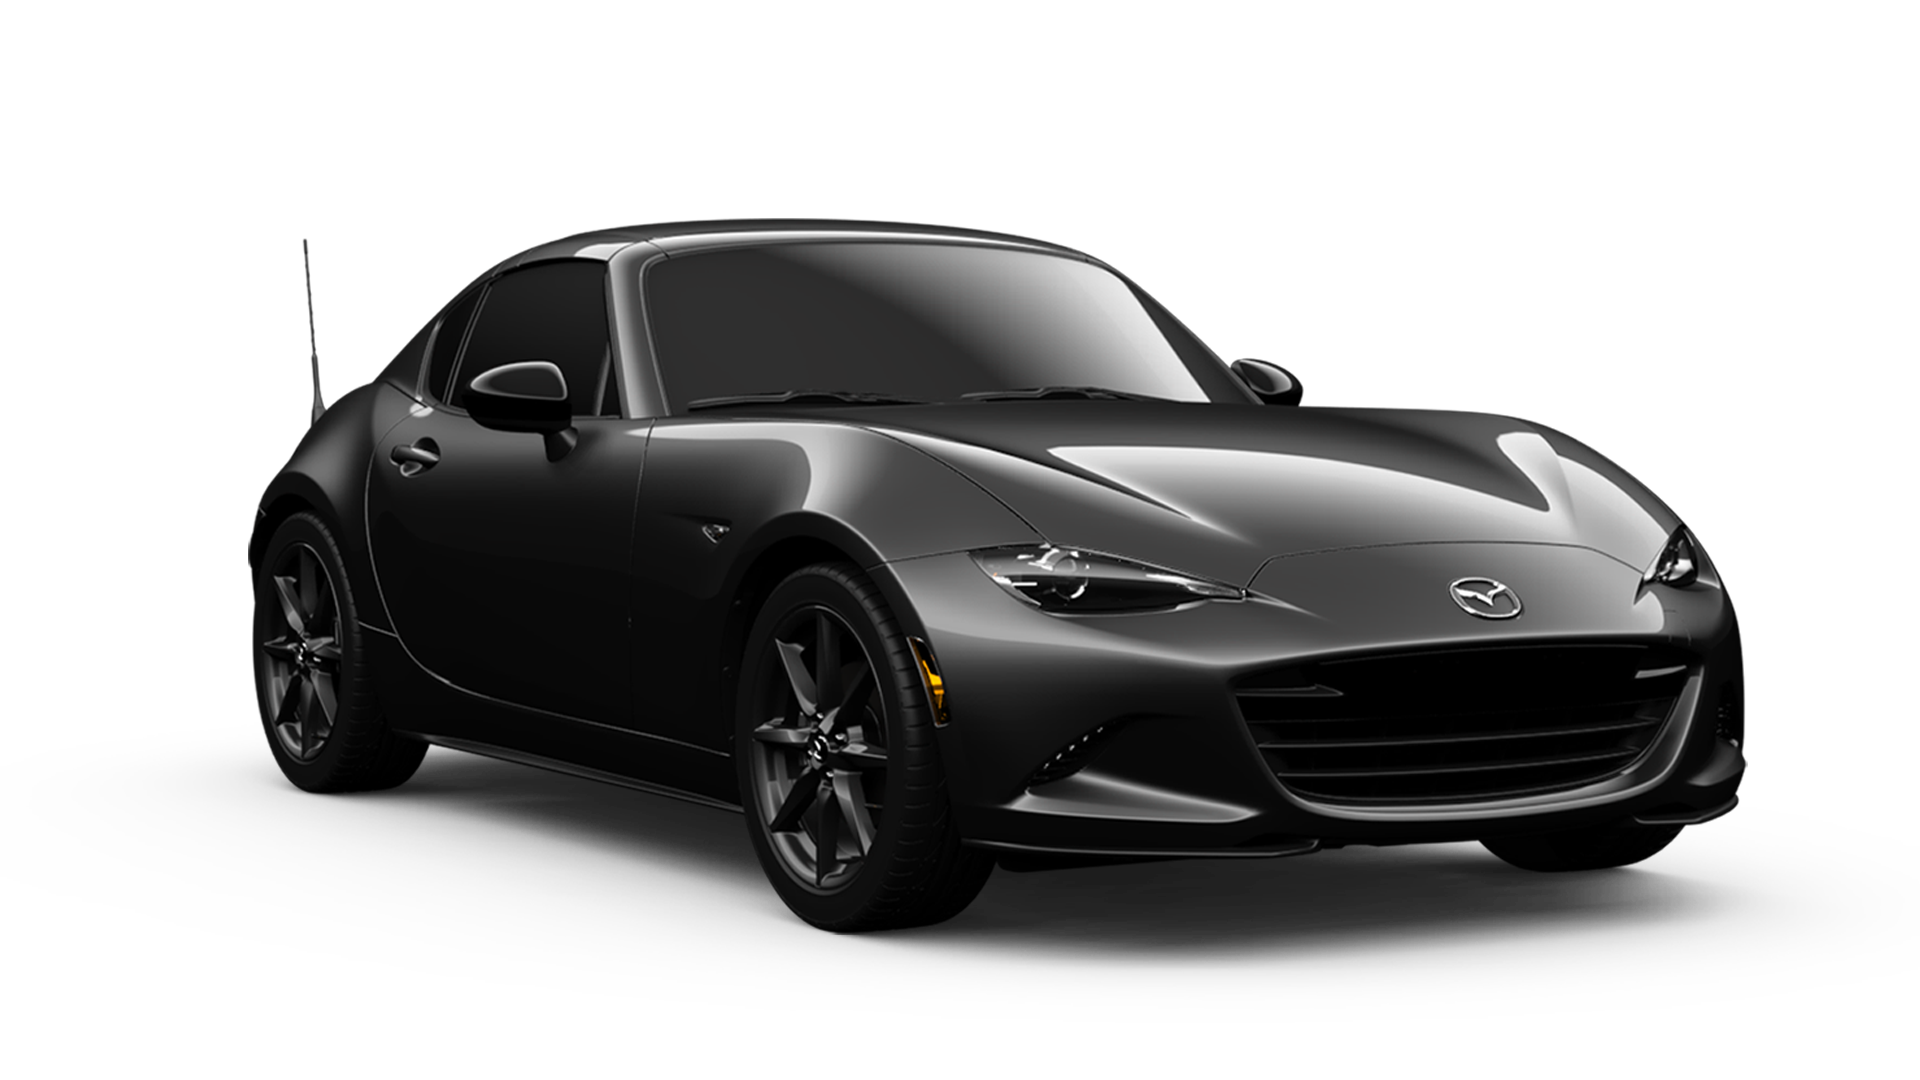 2018 mazda gt new car release date and review 2018. Black Bedroom Furniture Sets. Home Design Ideas